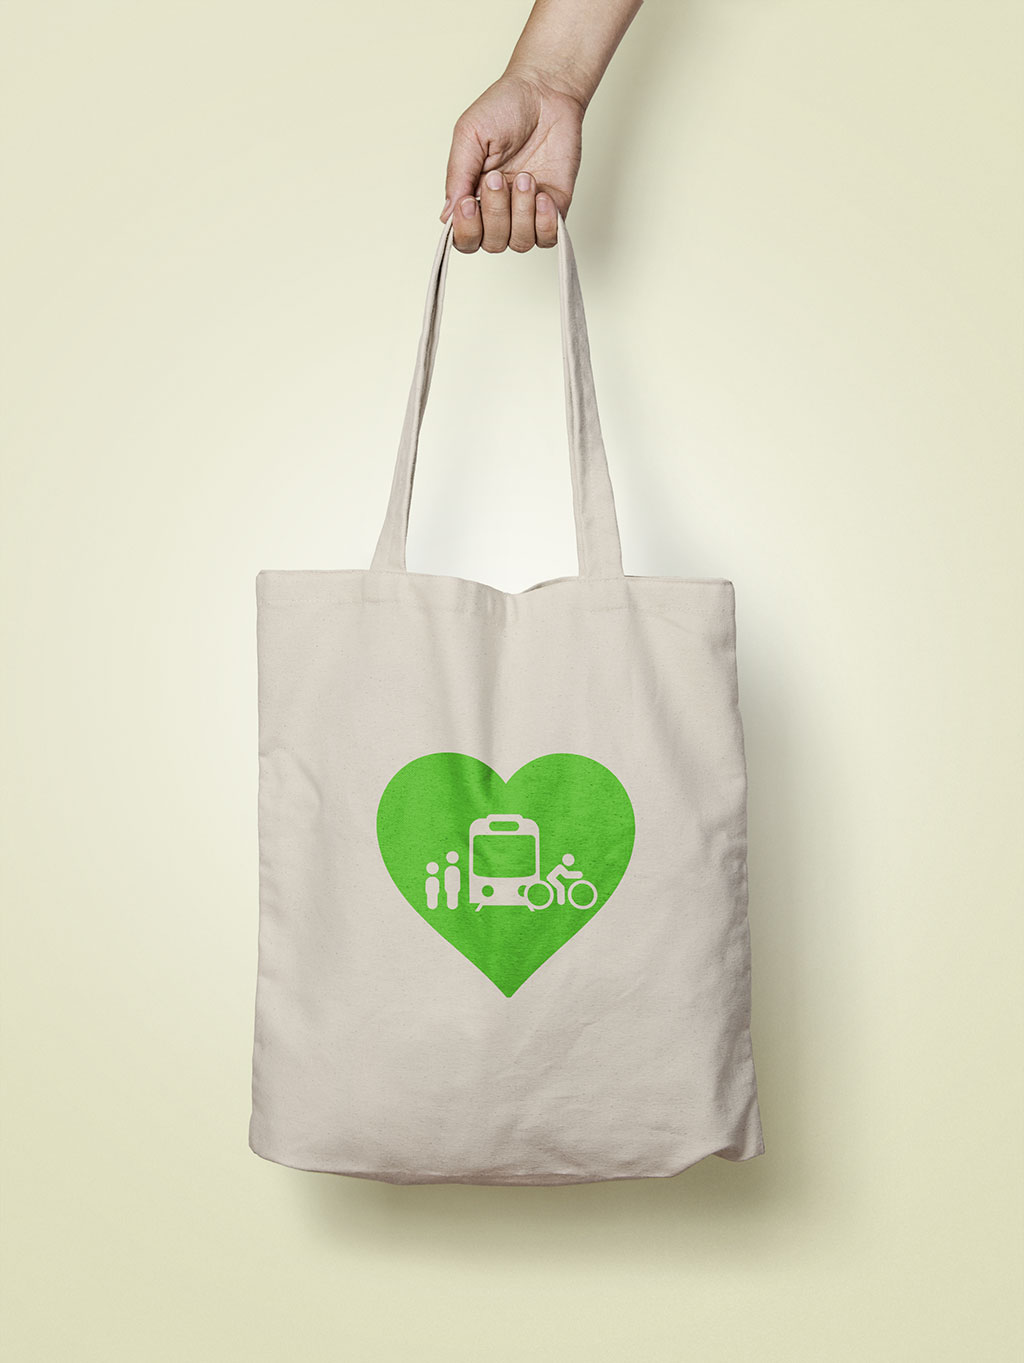 I Love ♥ Transit Tote Bag